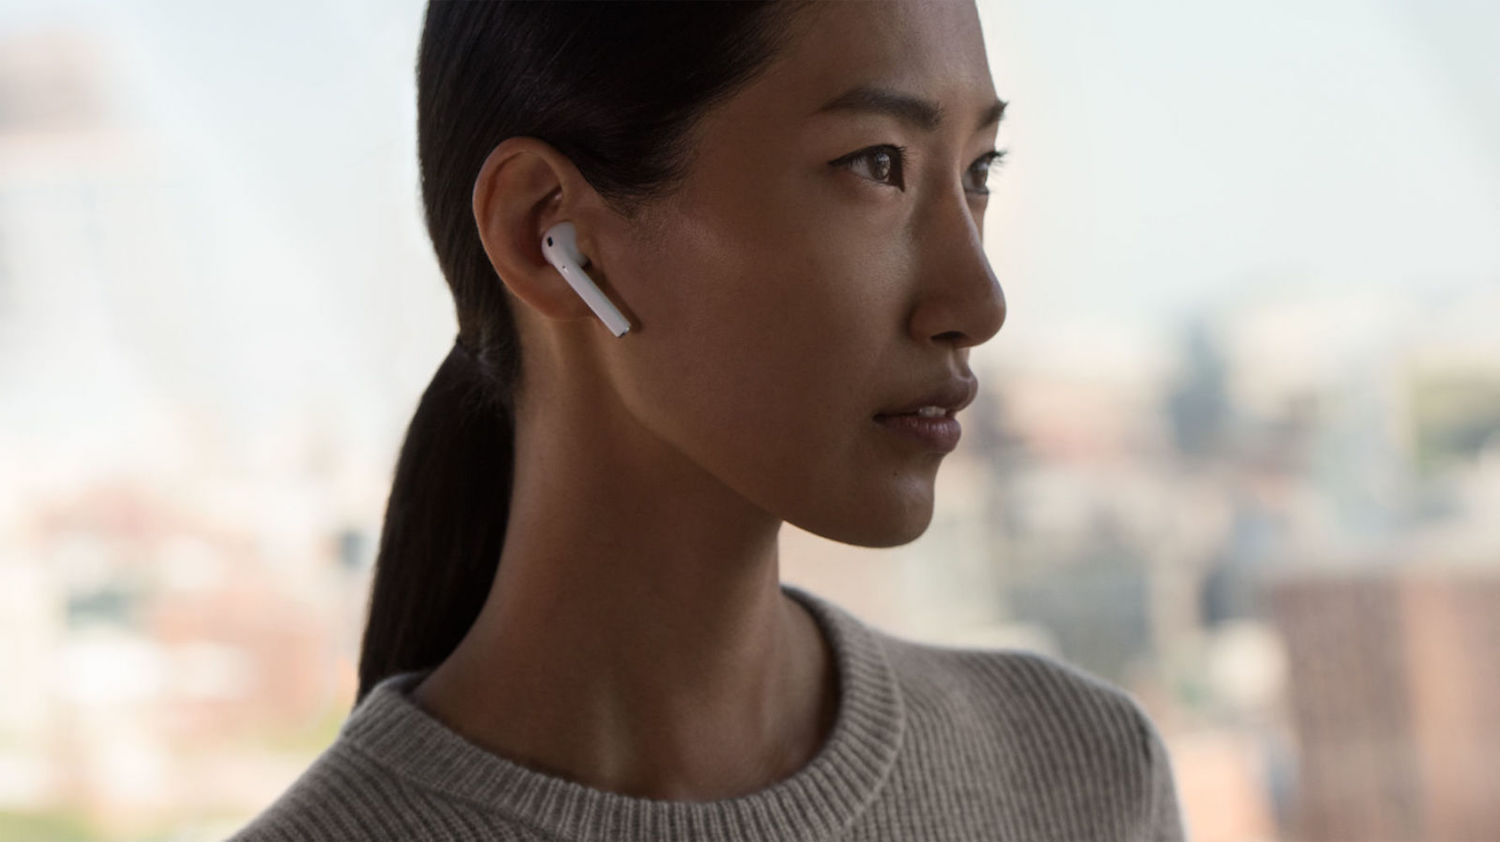 Apple promised to solve the problem with AirPods